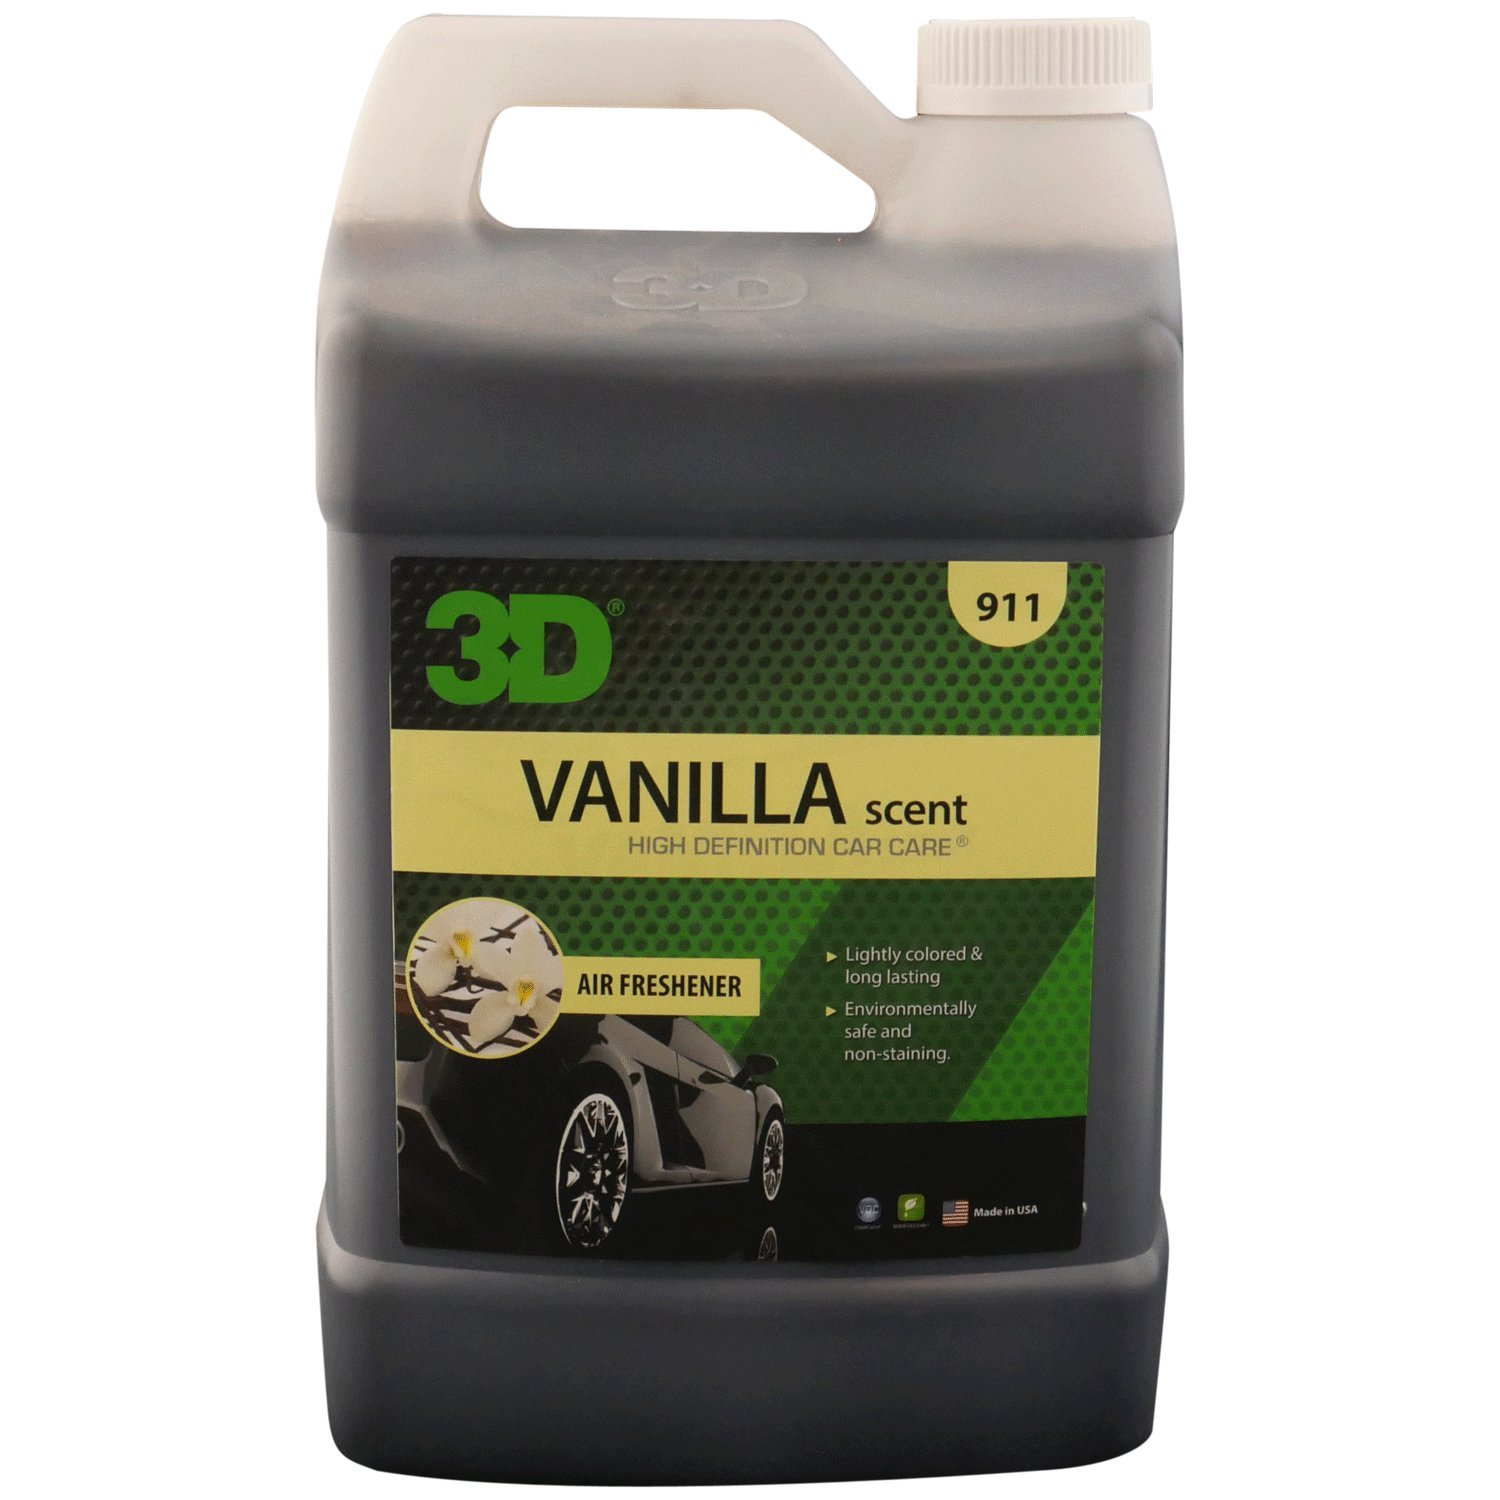 c6ee26b0b94c4 3D Air Freshener Vanilla Scent - 1 Gallon | Water Based Odor Eliminator |  Made in USA | All Natural | No Harmful Chemicals